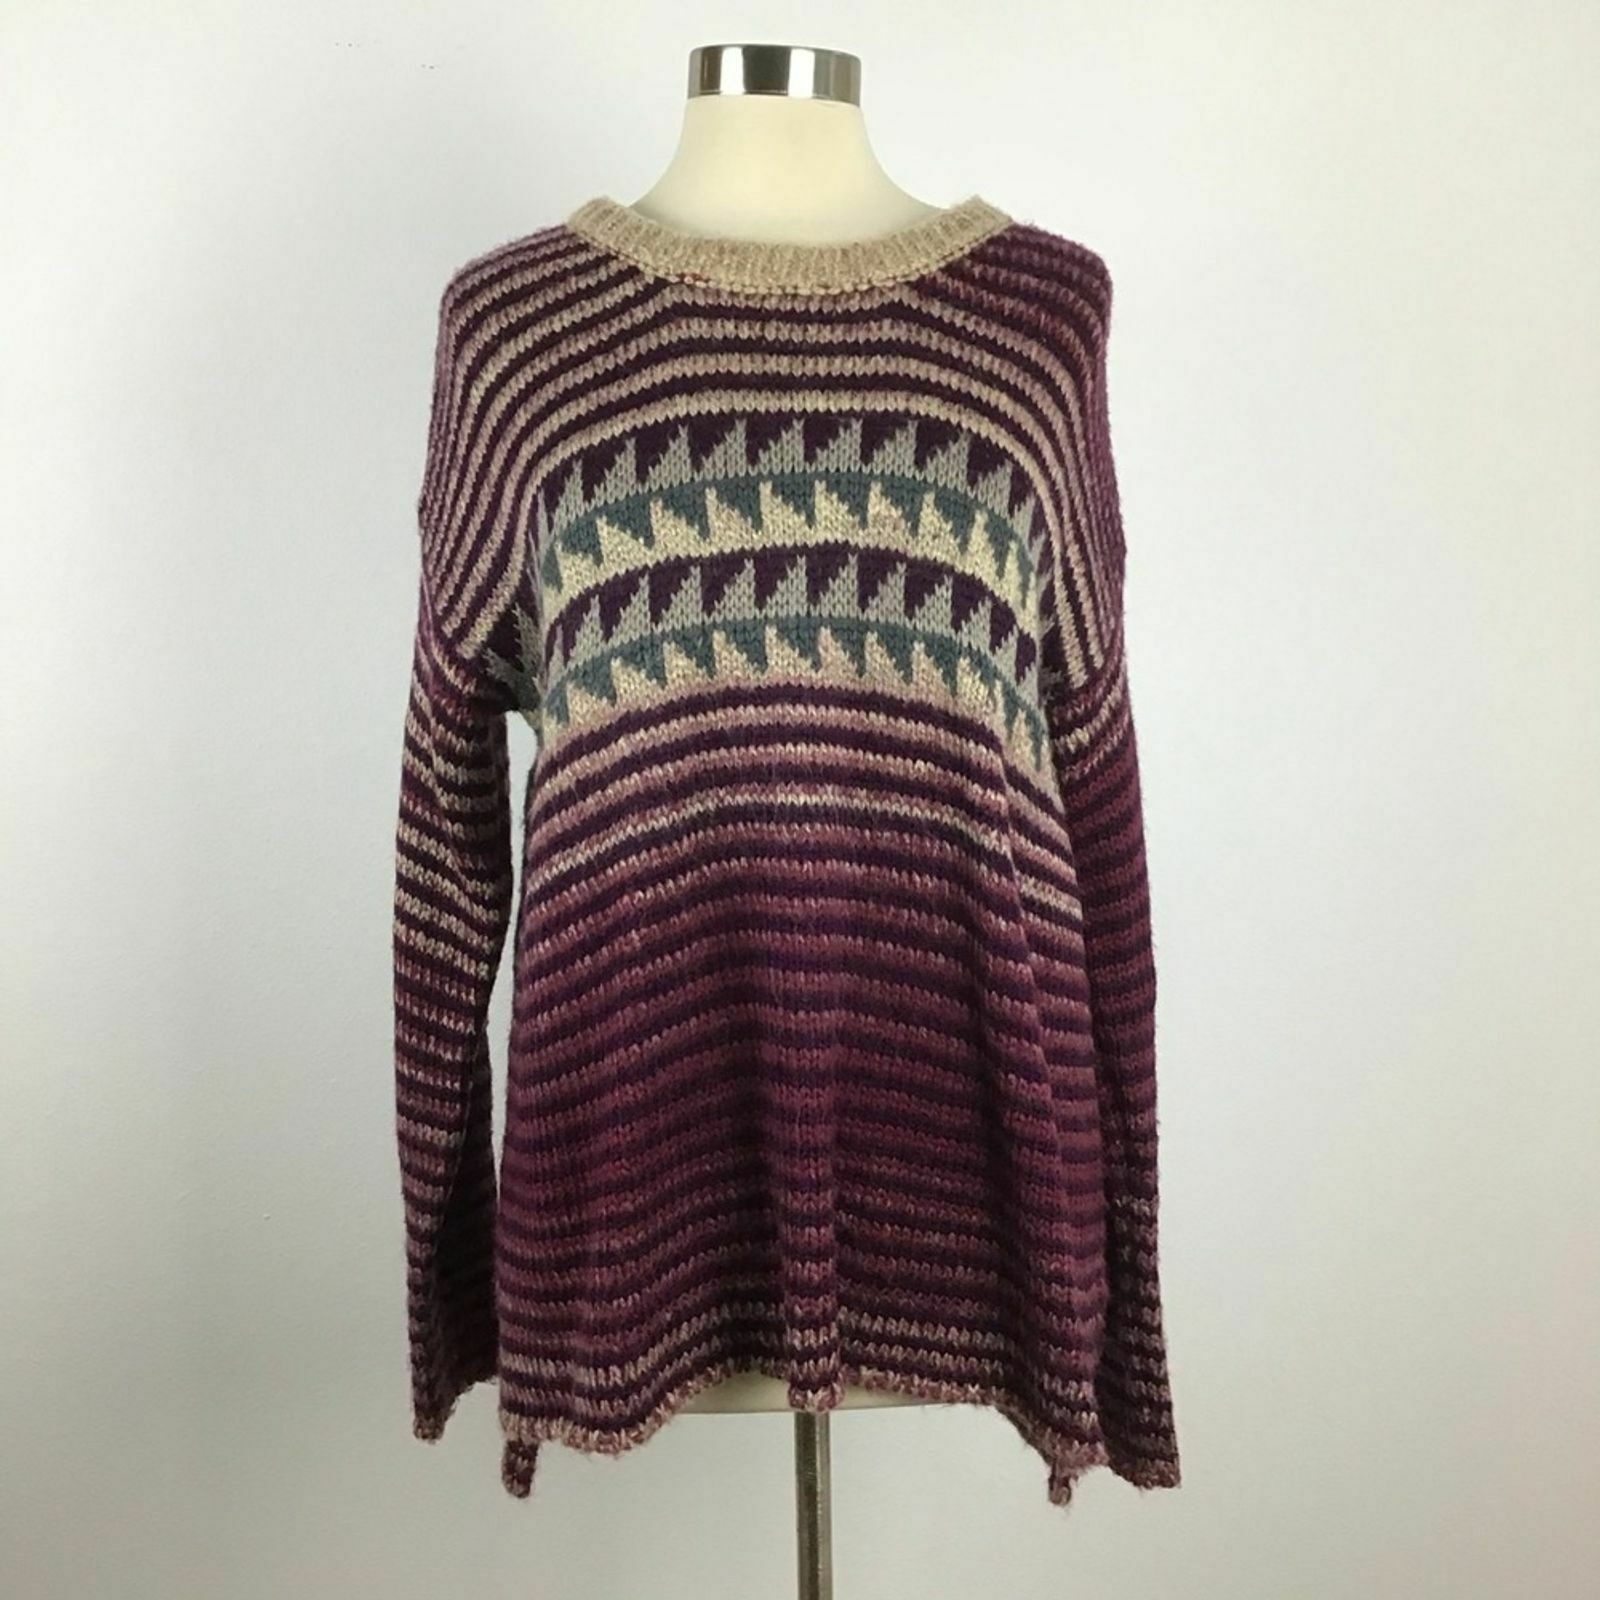 Primary image for Womens M Mystree fuzzy high low stripe wool mohair sweater